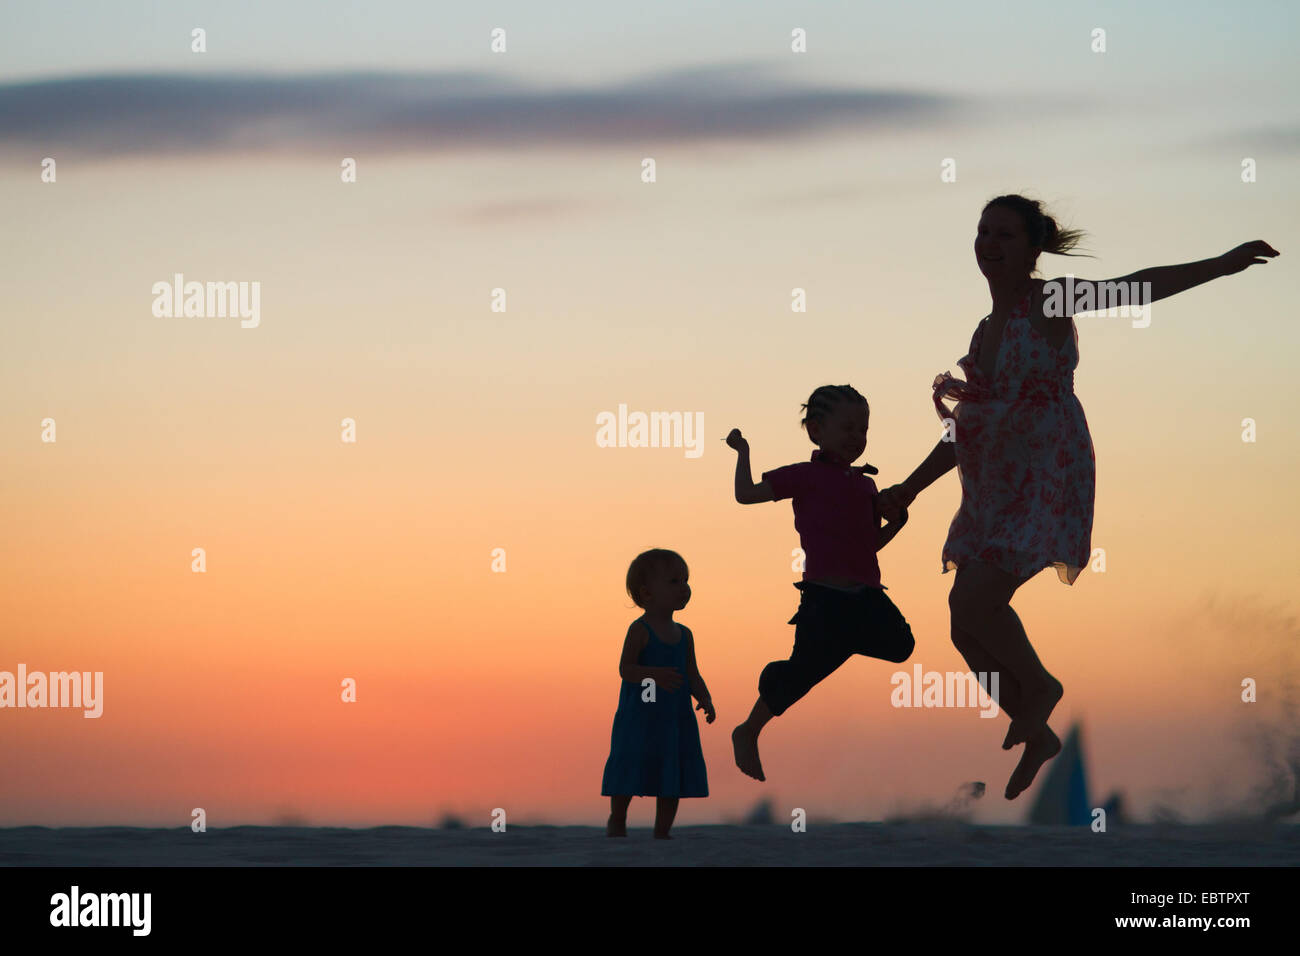 silhouettes of mother and two children jumping on beach at sunset Stock Photo